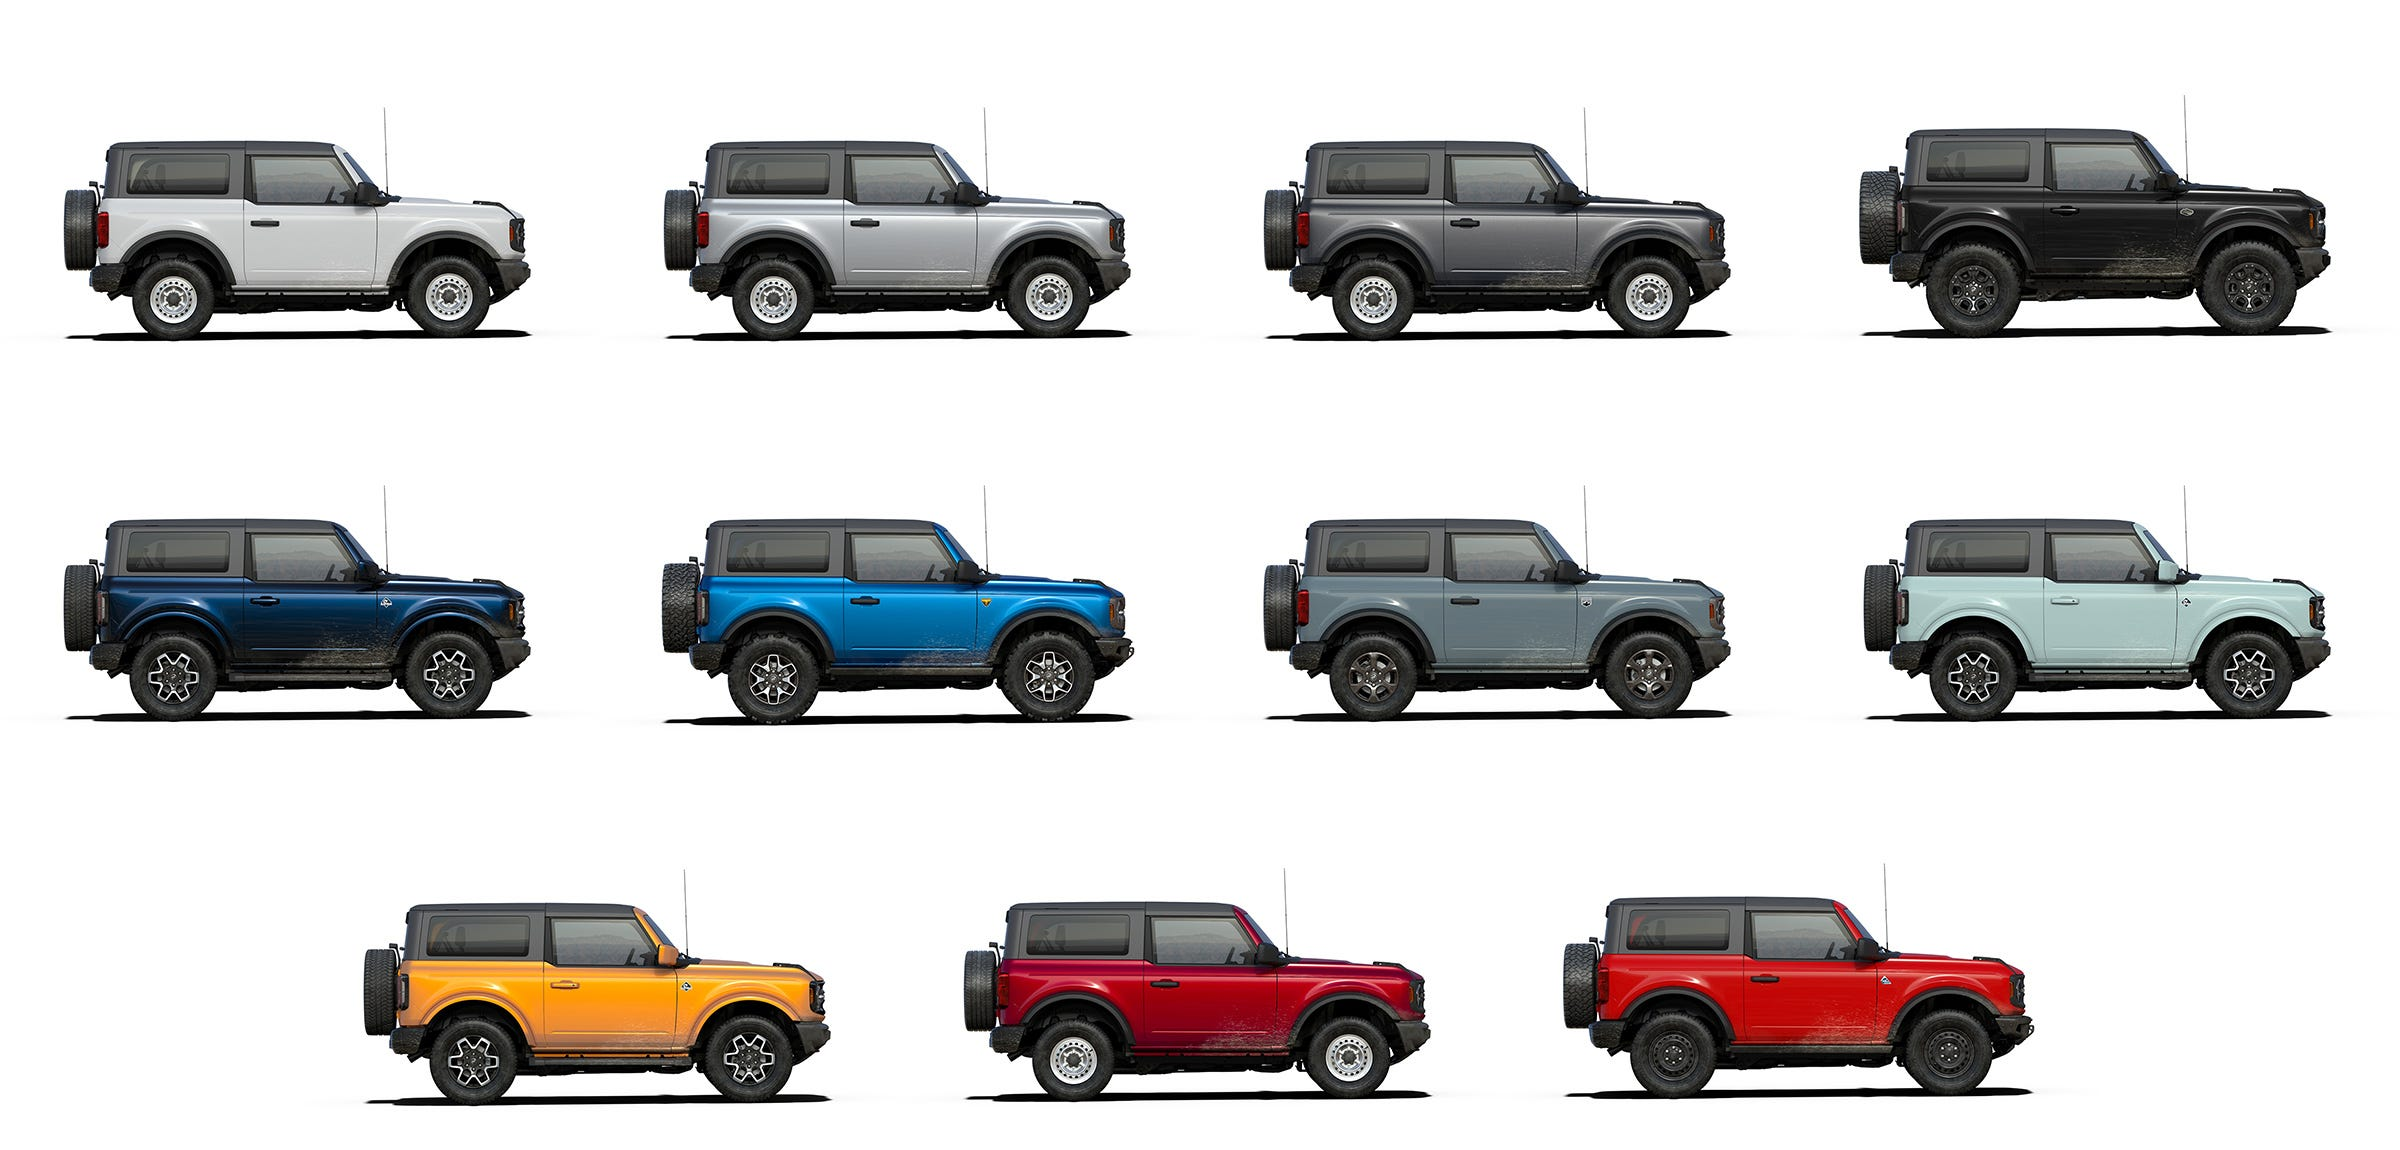 2021 Ford Bronco Fans Allowed To Build And Price After Months Long Wait